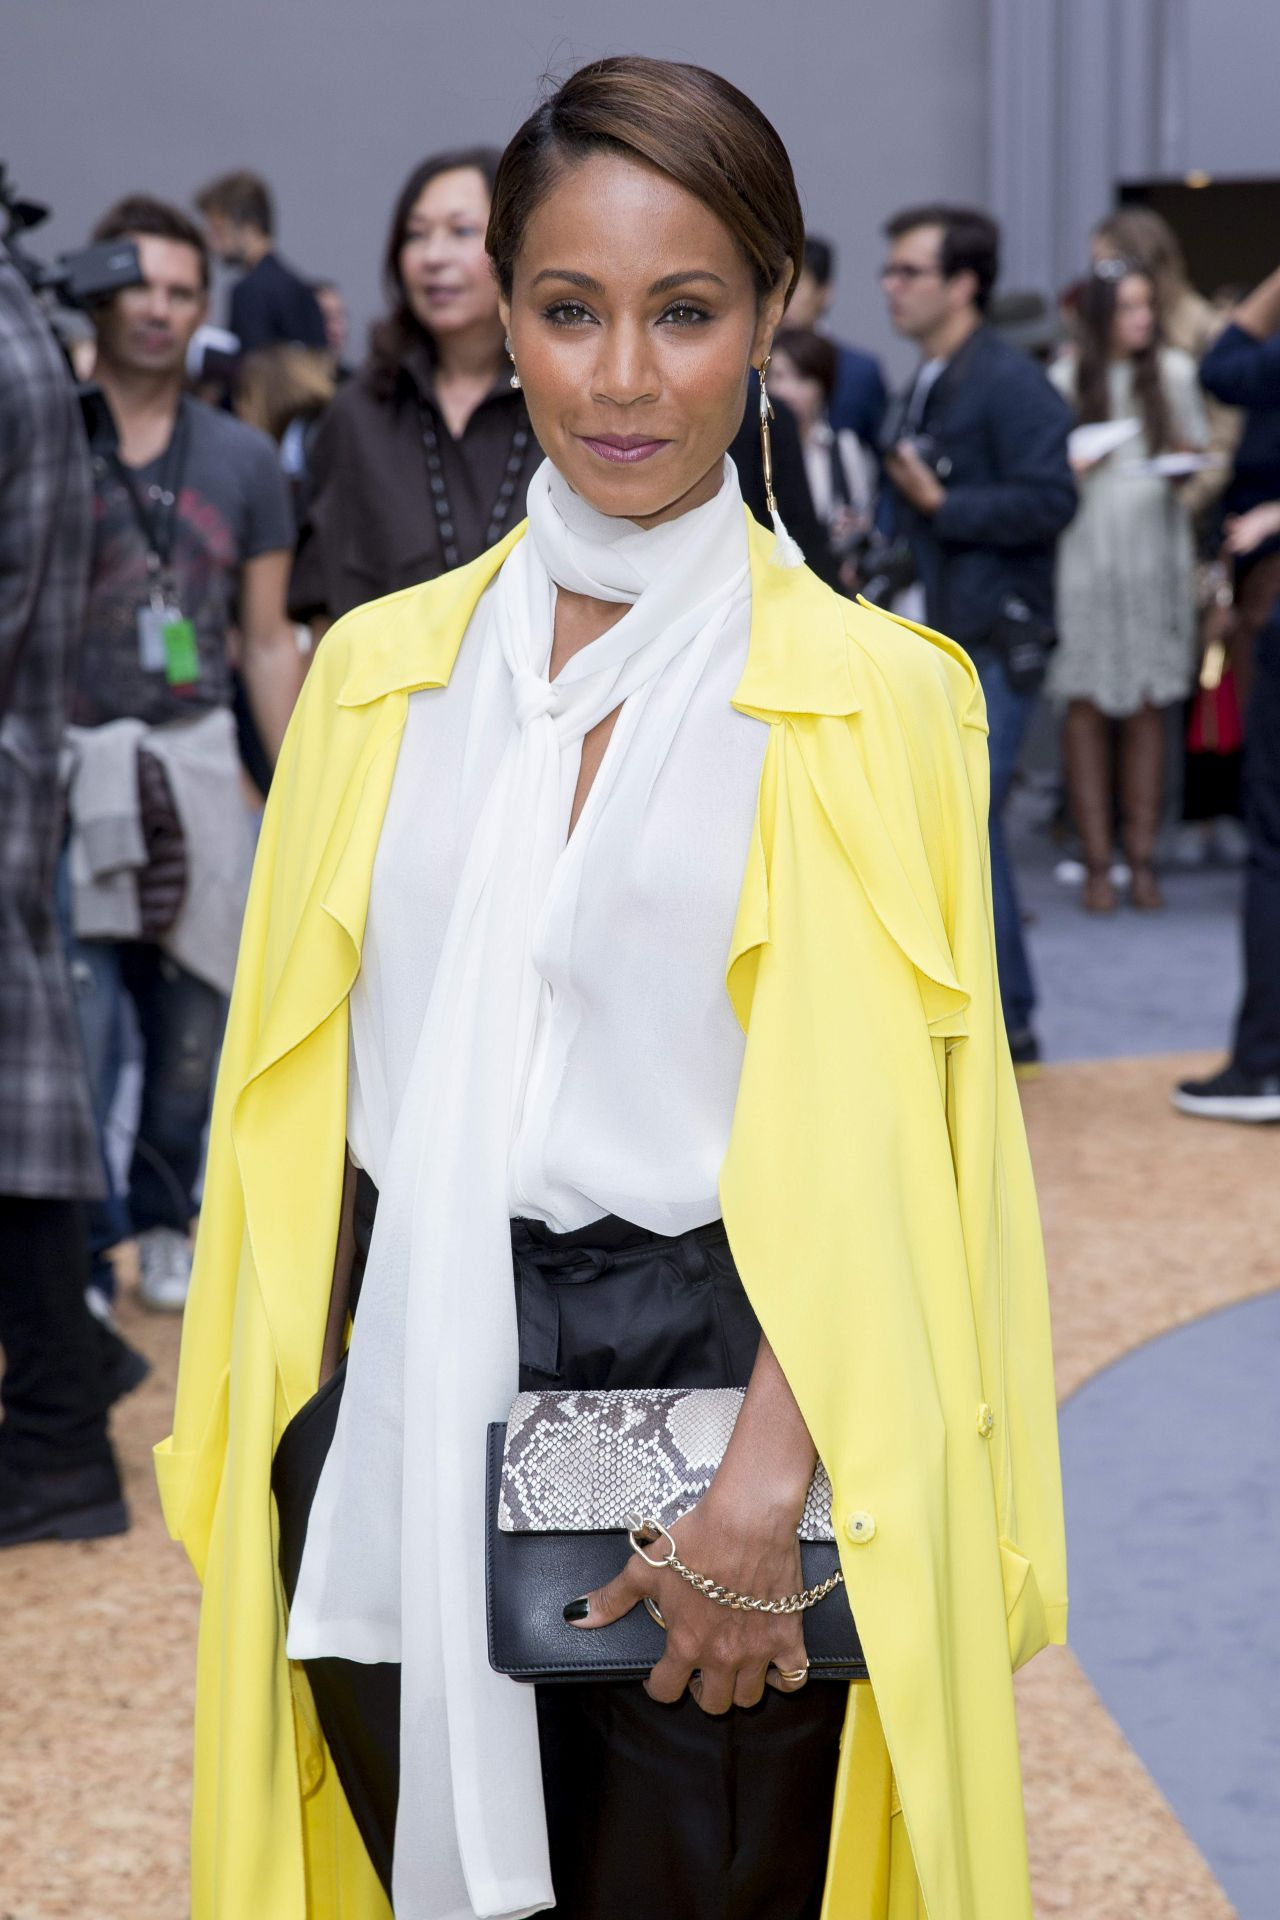 jada-pinkett-smith-at-the-chloé-fashion-show-october-2015_1